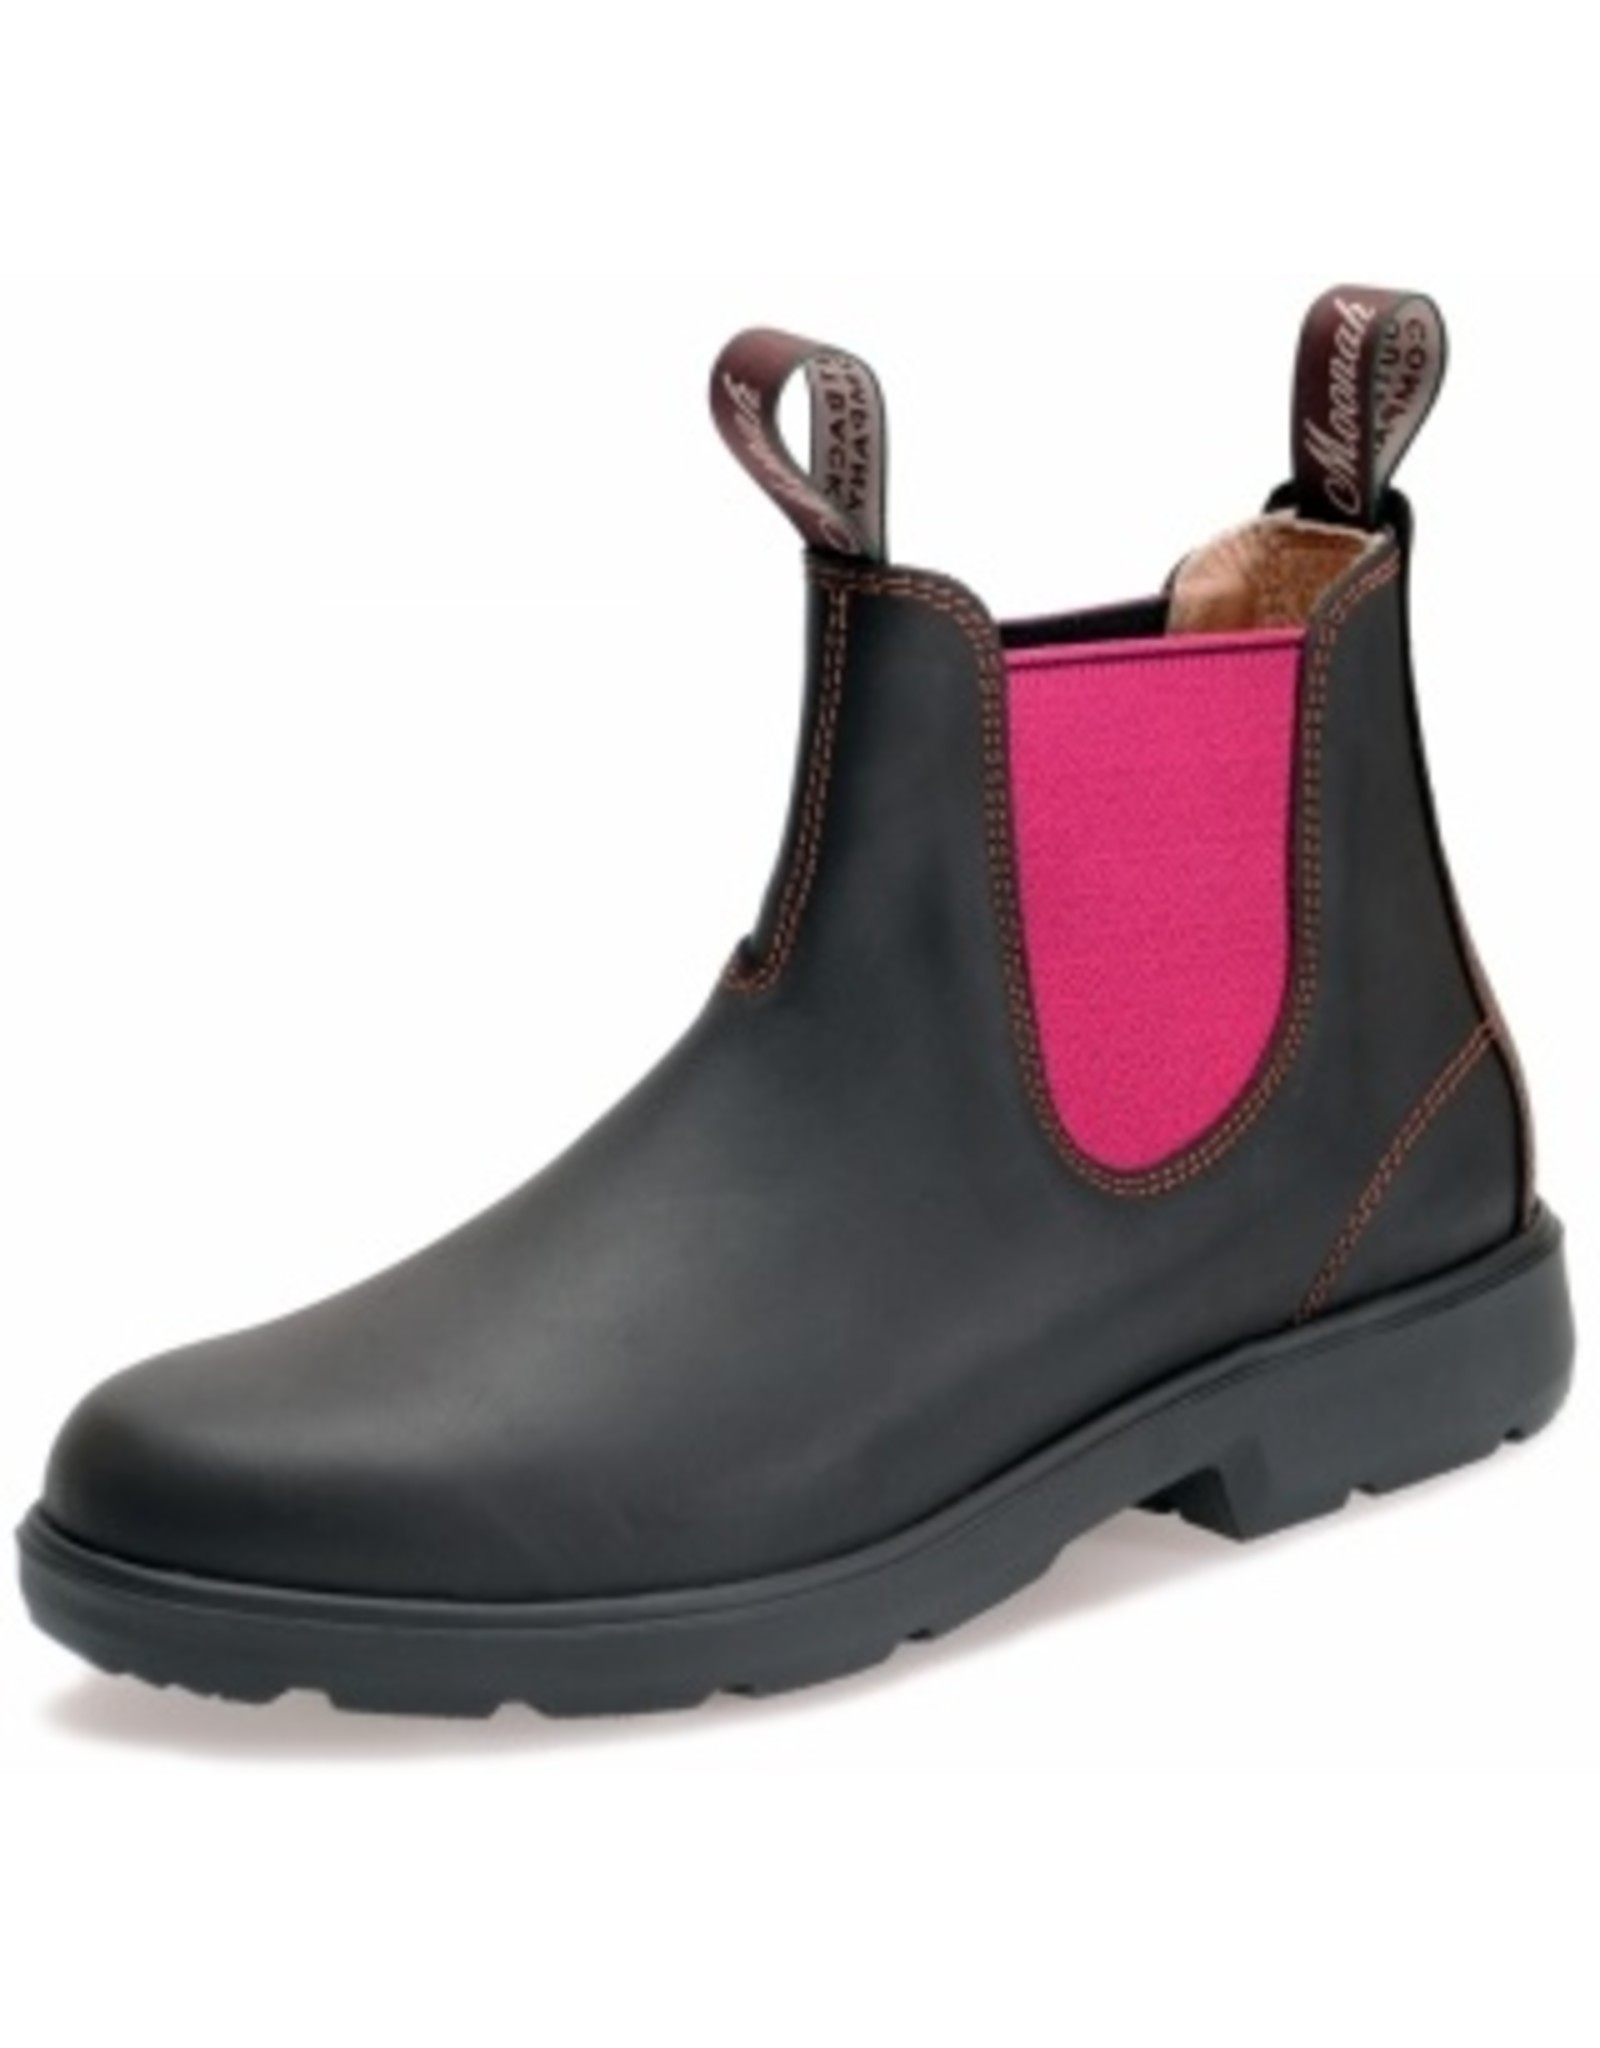 Moonah Moonah Chelsea Boots